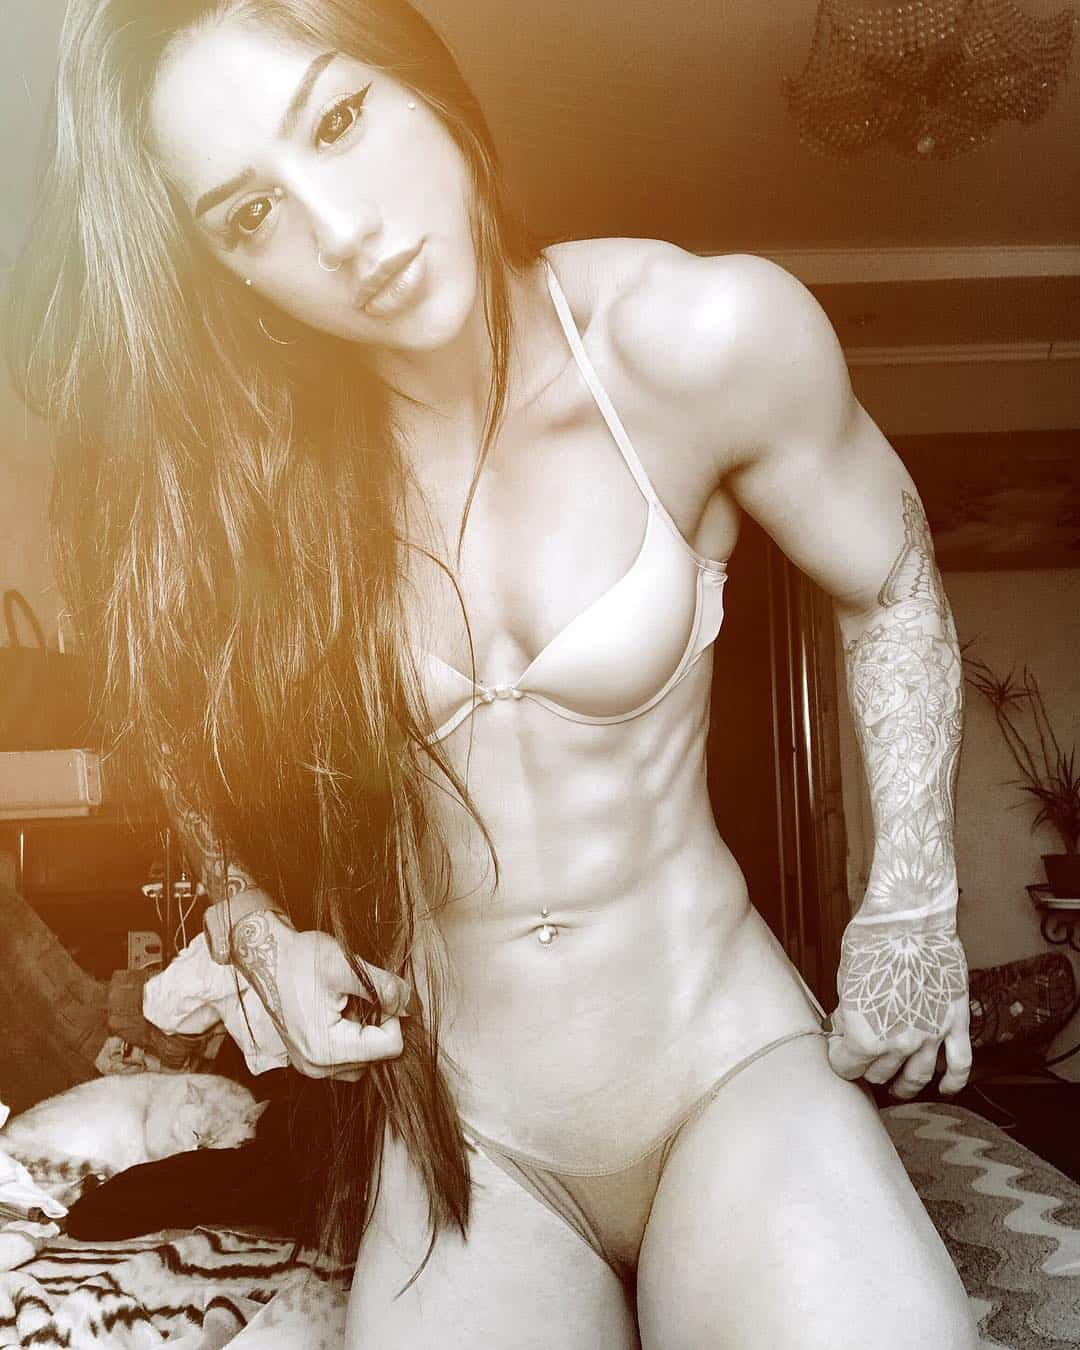 Bakhar Nabieva great body